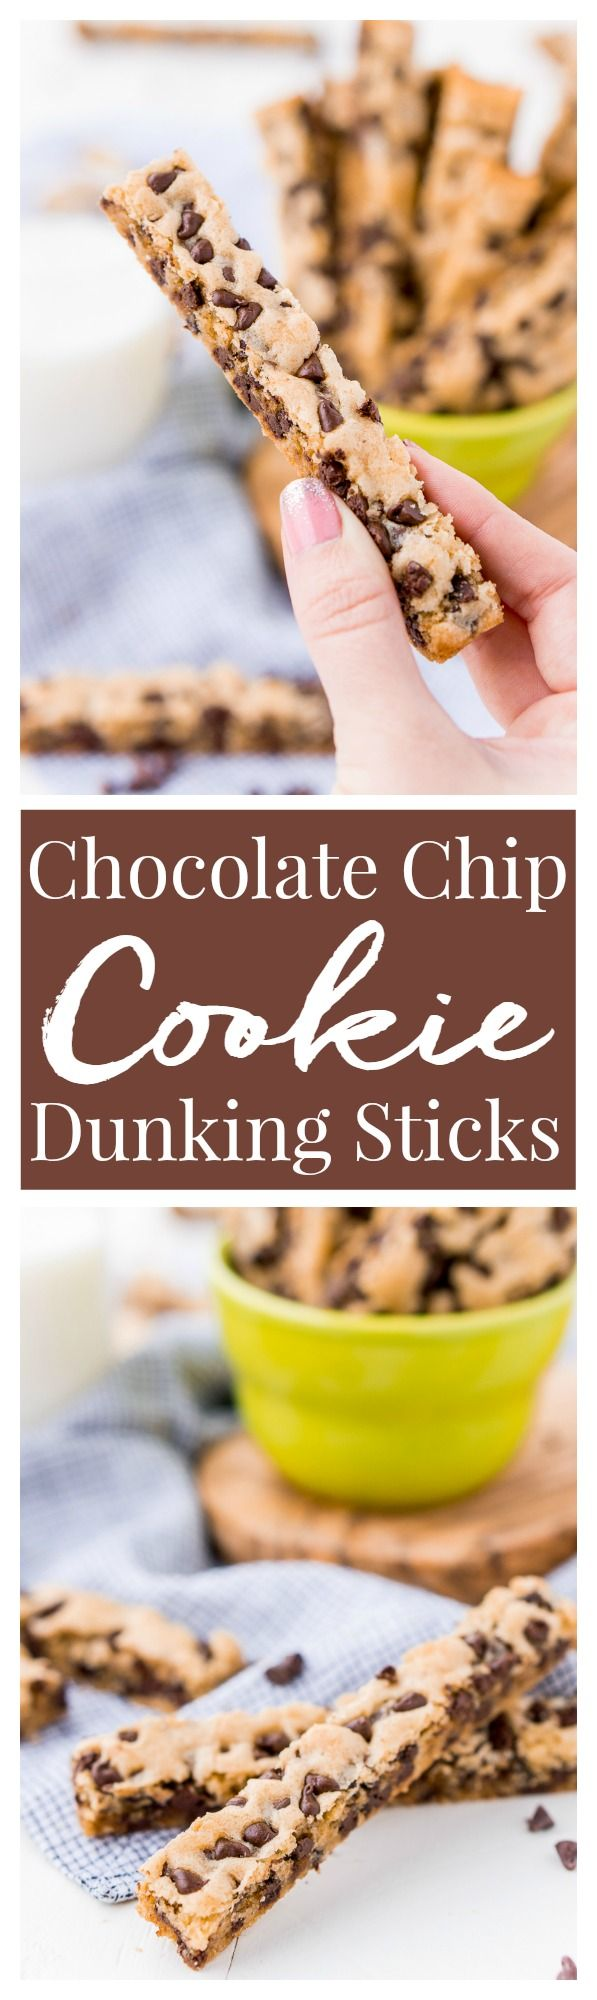 Chocolate Chip Cookie Sticks are a fun twist on classic chocolate chip cookies and the perfect dessert for dipping! A thick, slightly crisp, yet still chewy cookie loaded with chocolate chips and made in a 9 x 13-inch pan for easy baking!